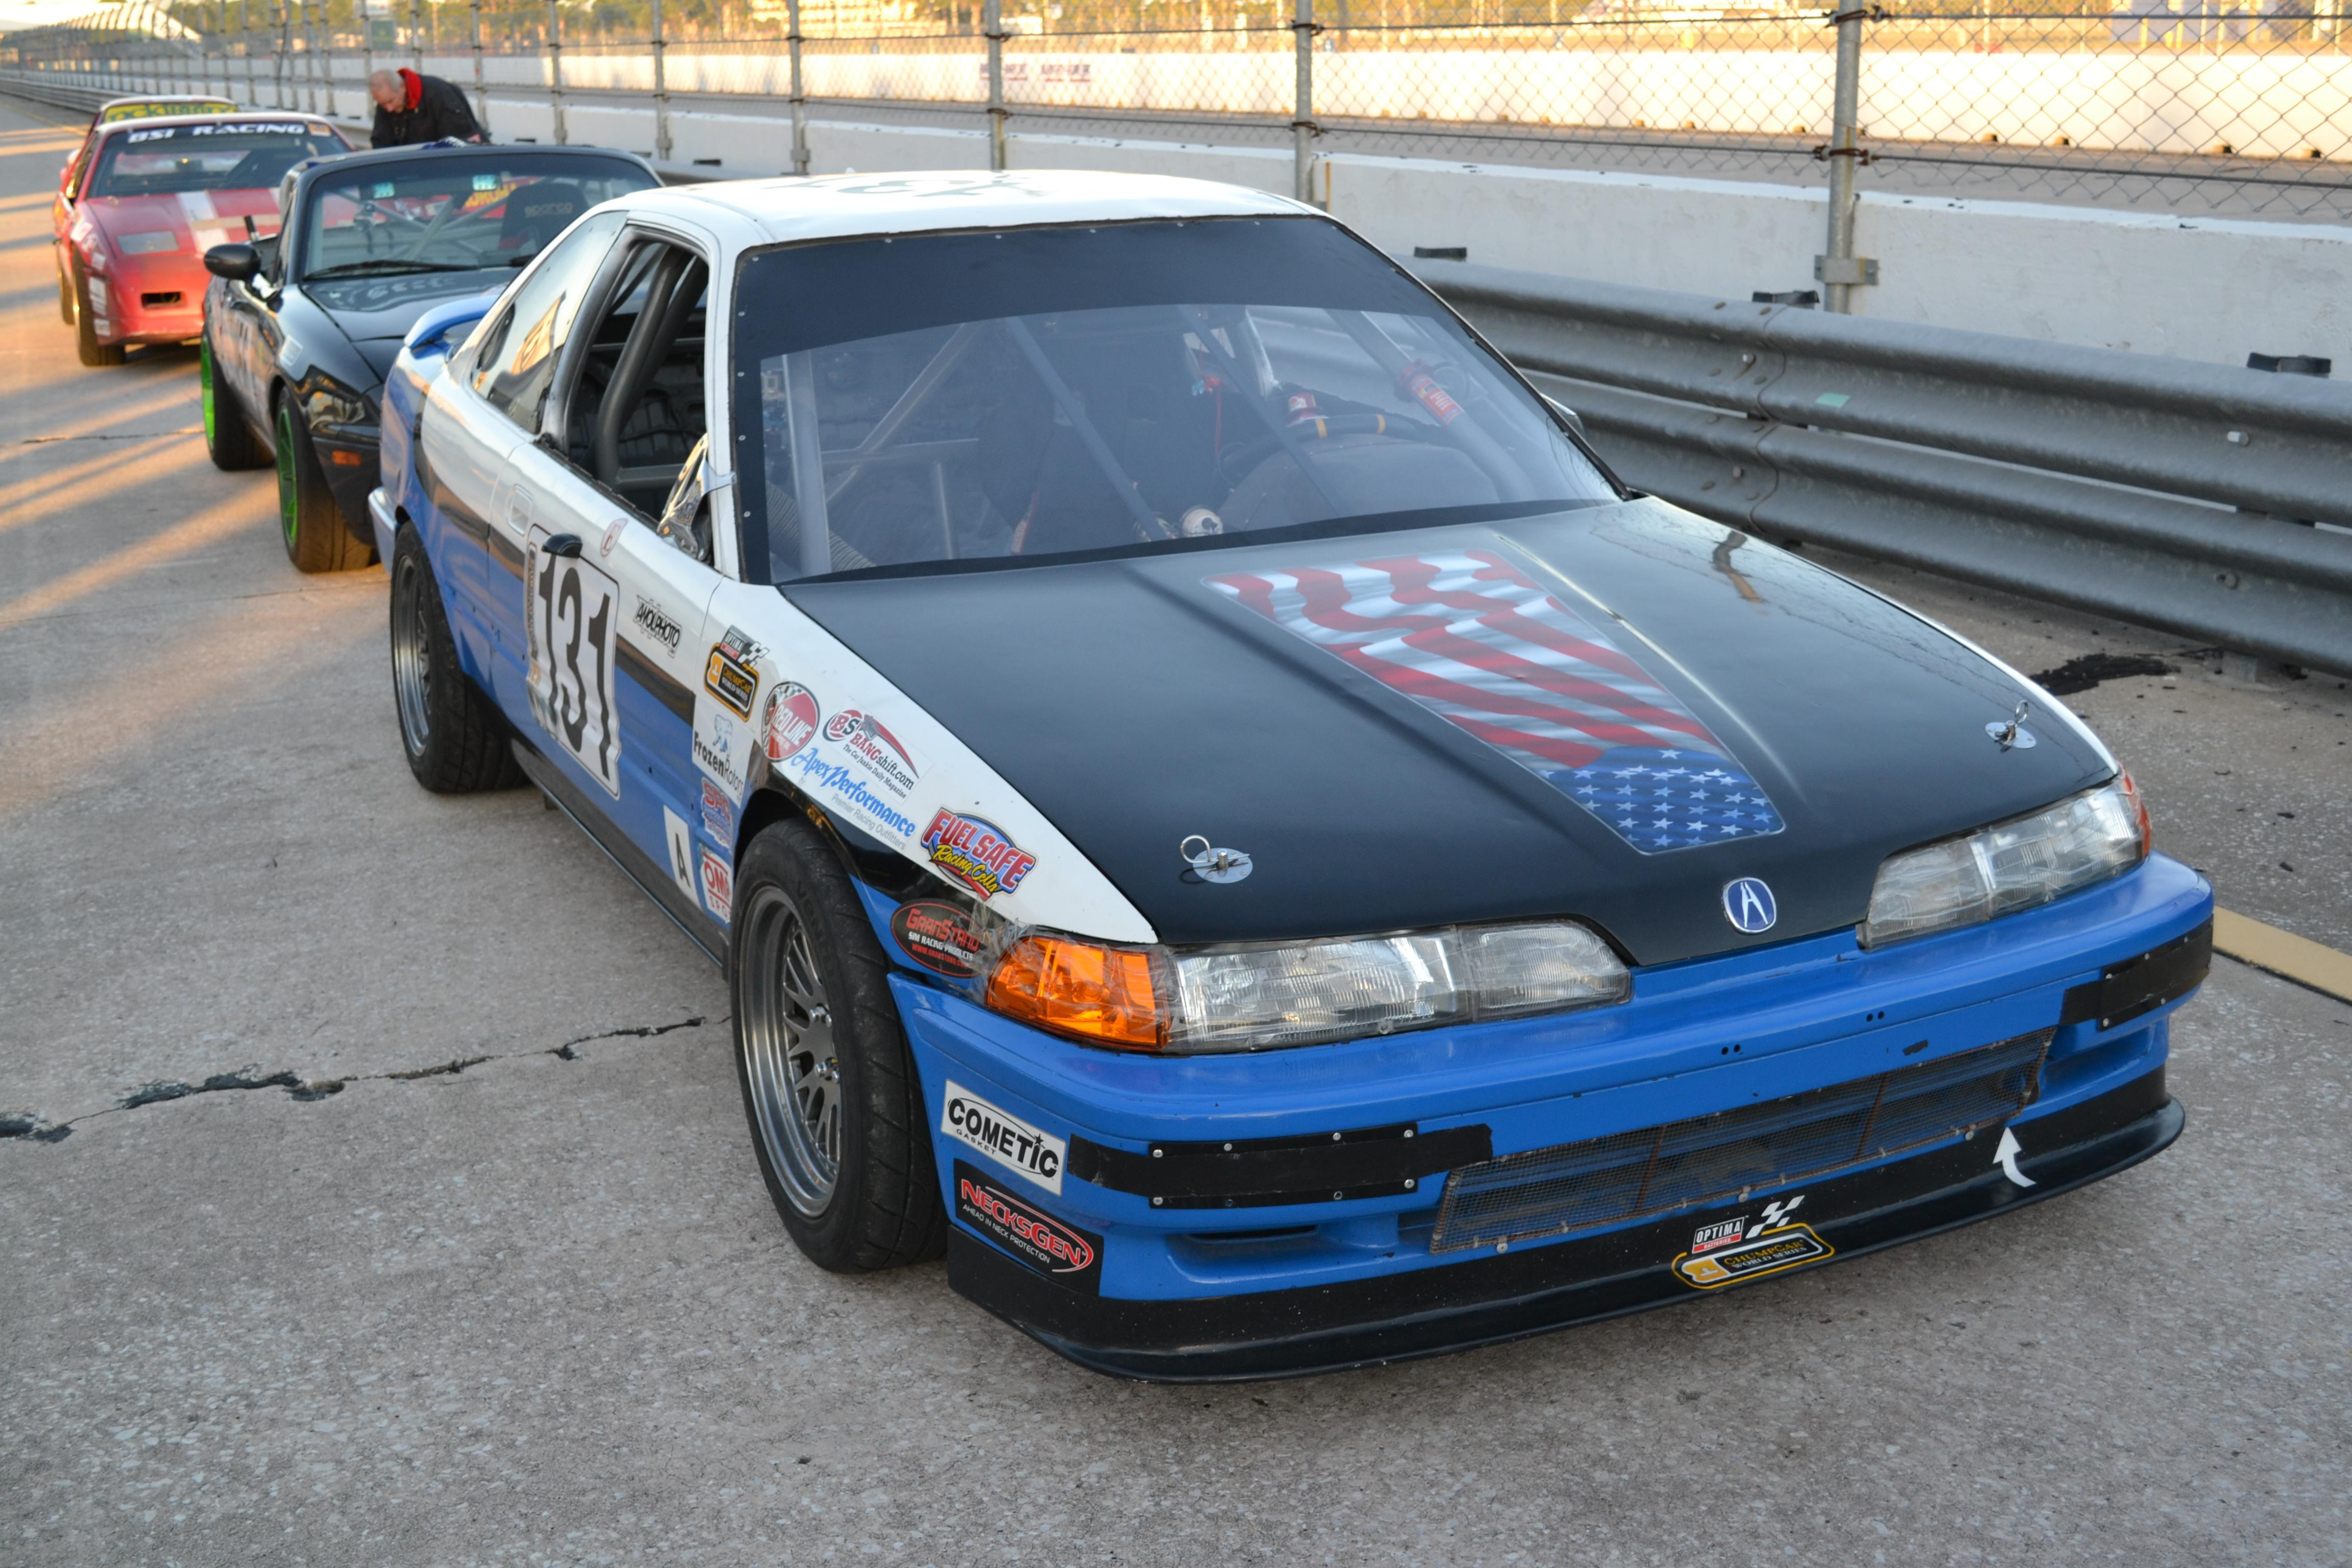 For Sale Acura Integra The Source For Cars Parts Services - 91 acura integra parts